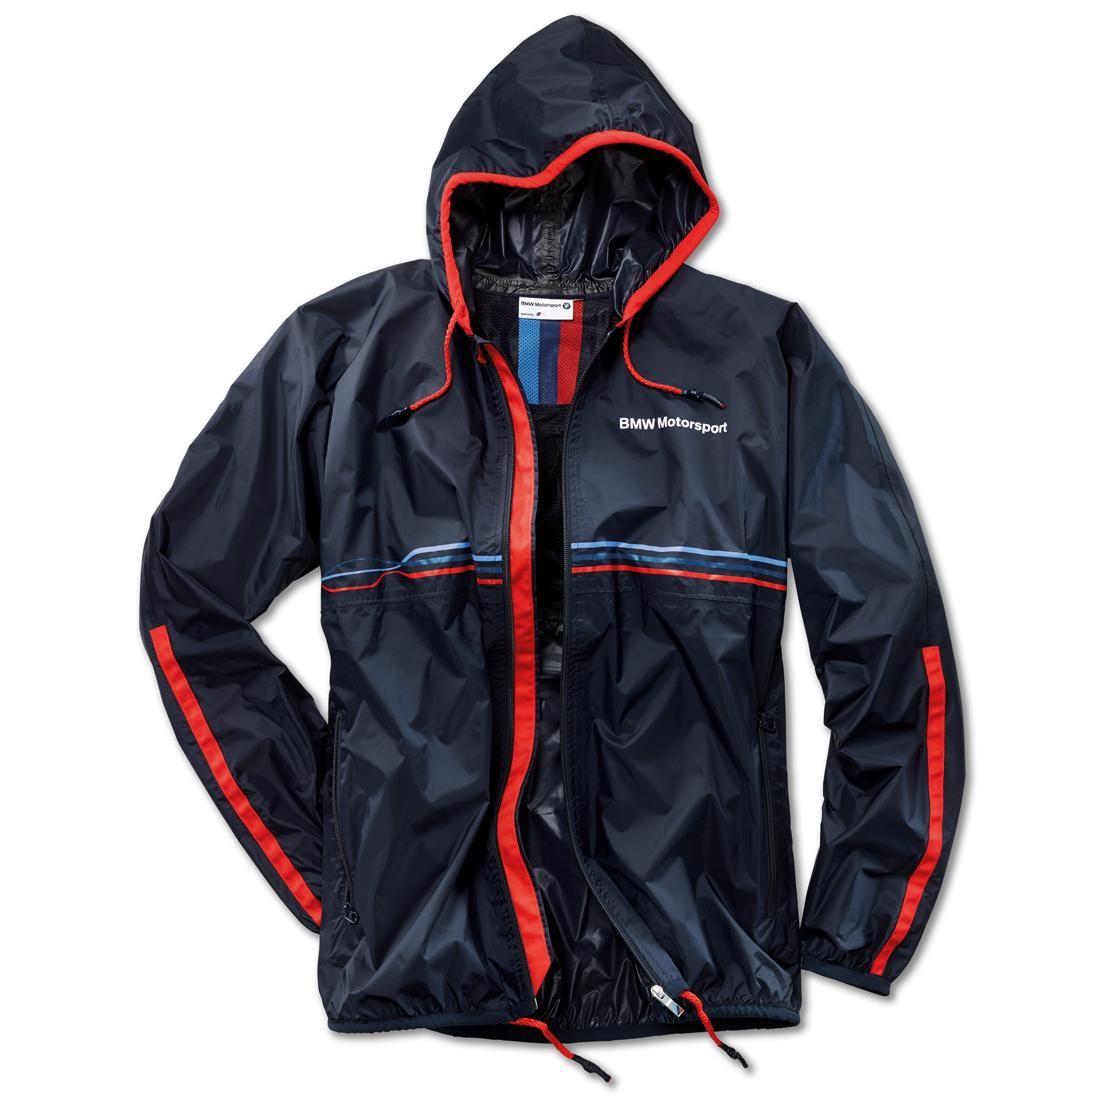 BMW Unisex Motorsport Rain Jacket | Automotive apparel ...